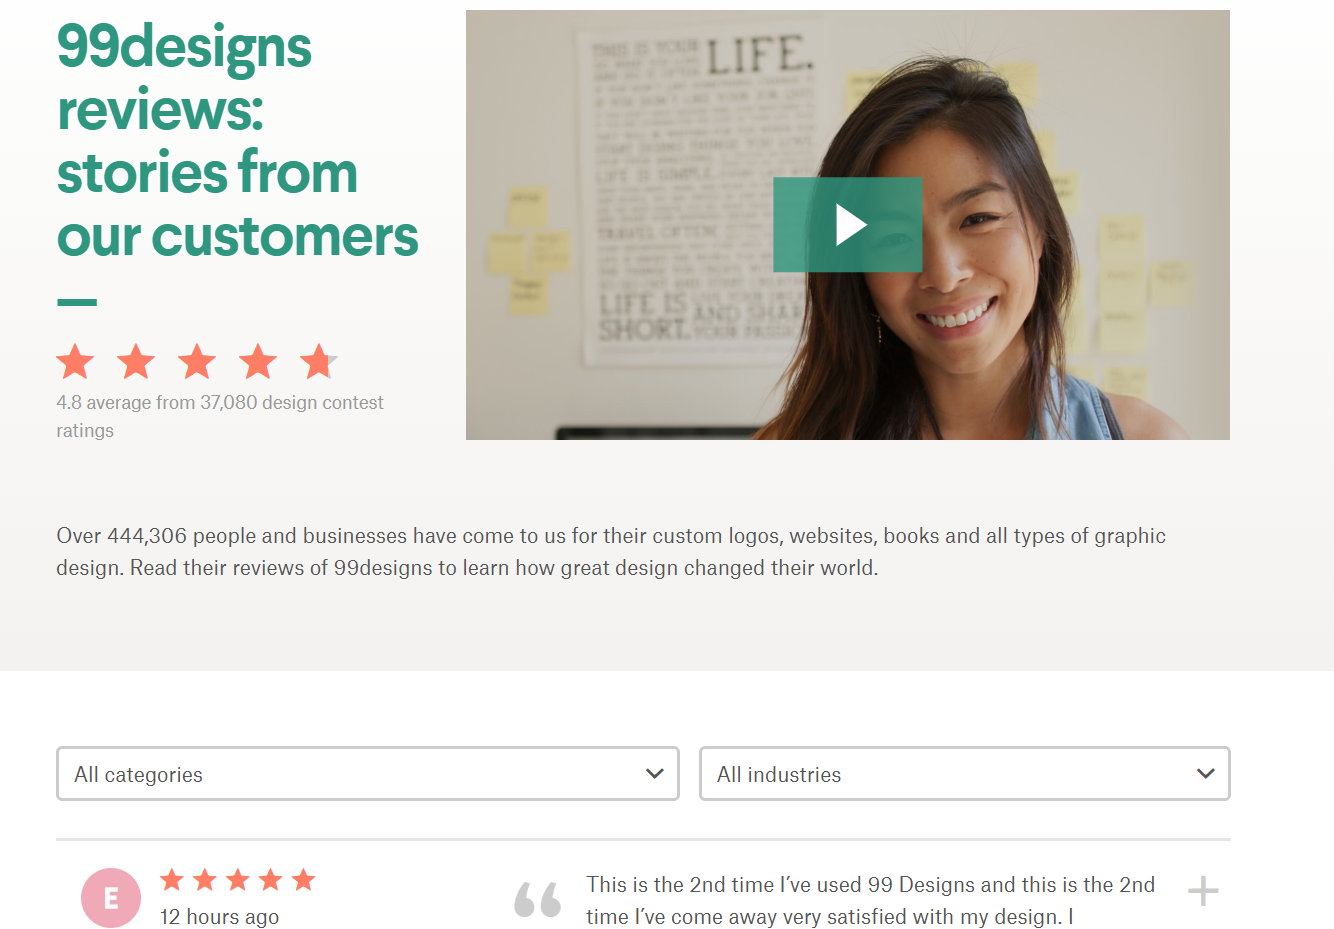 99designs Customer Videos and Reviews